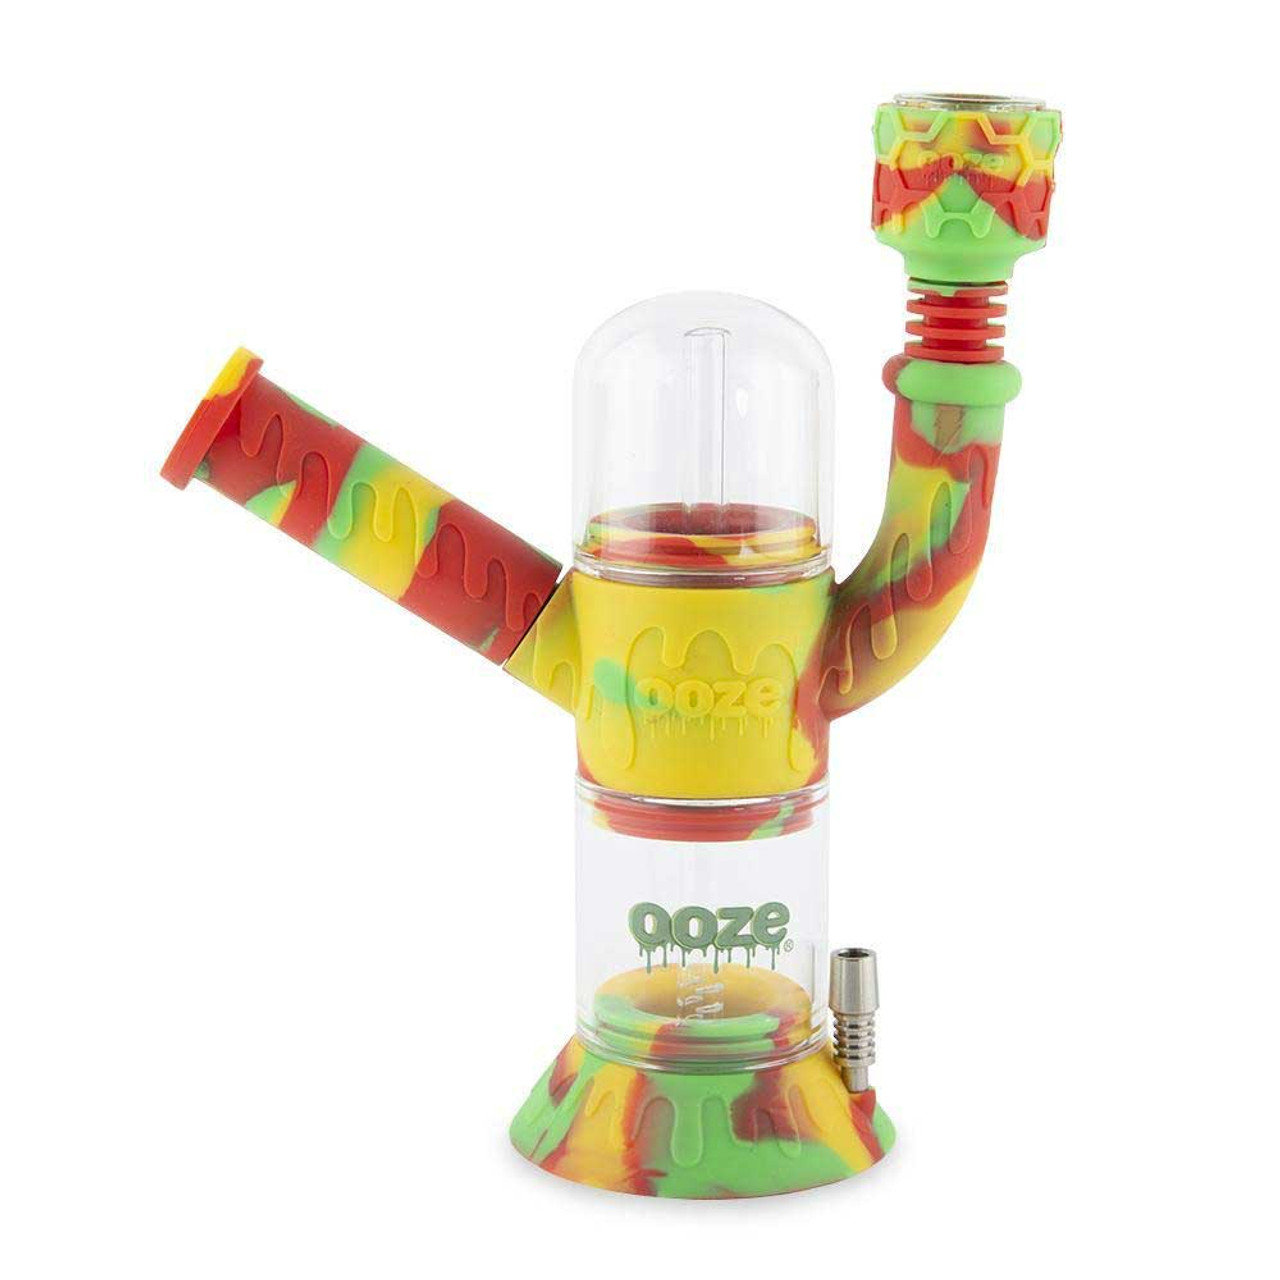 Ooze Cranium Silicone Water Pipe and Nectar Collector